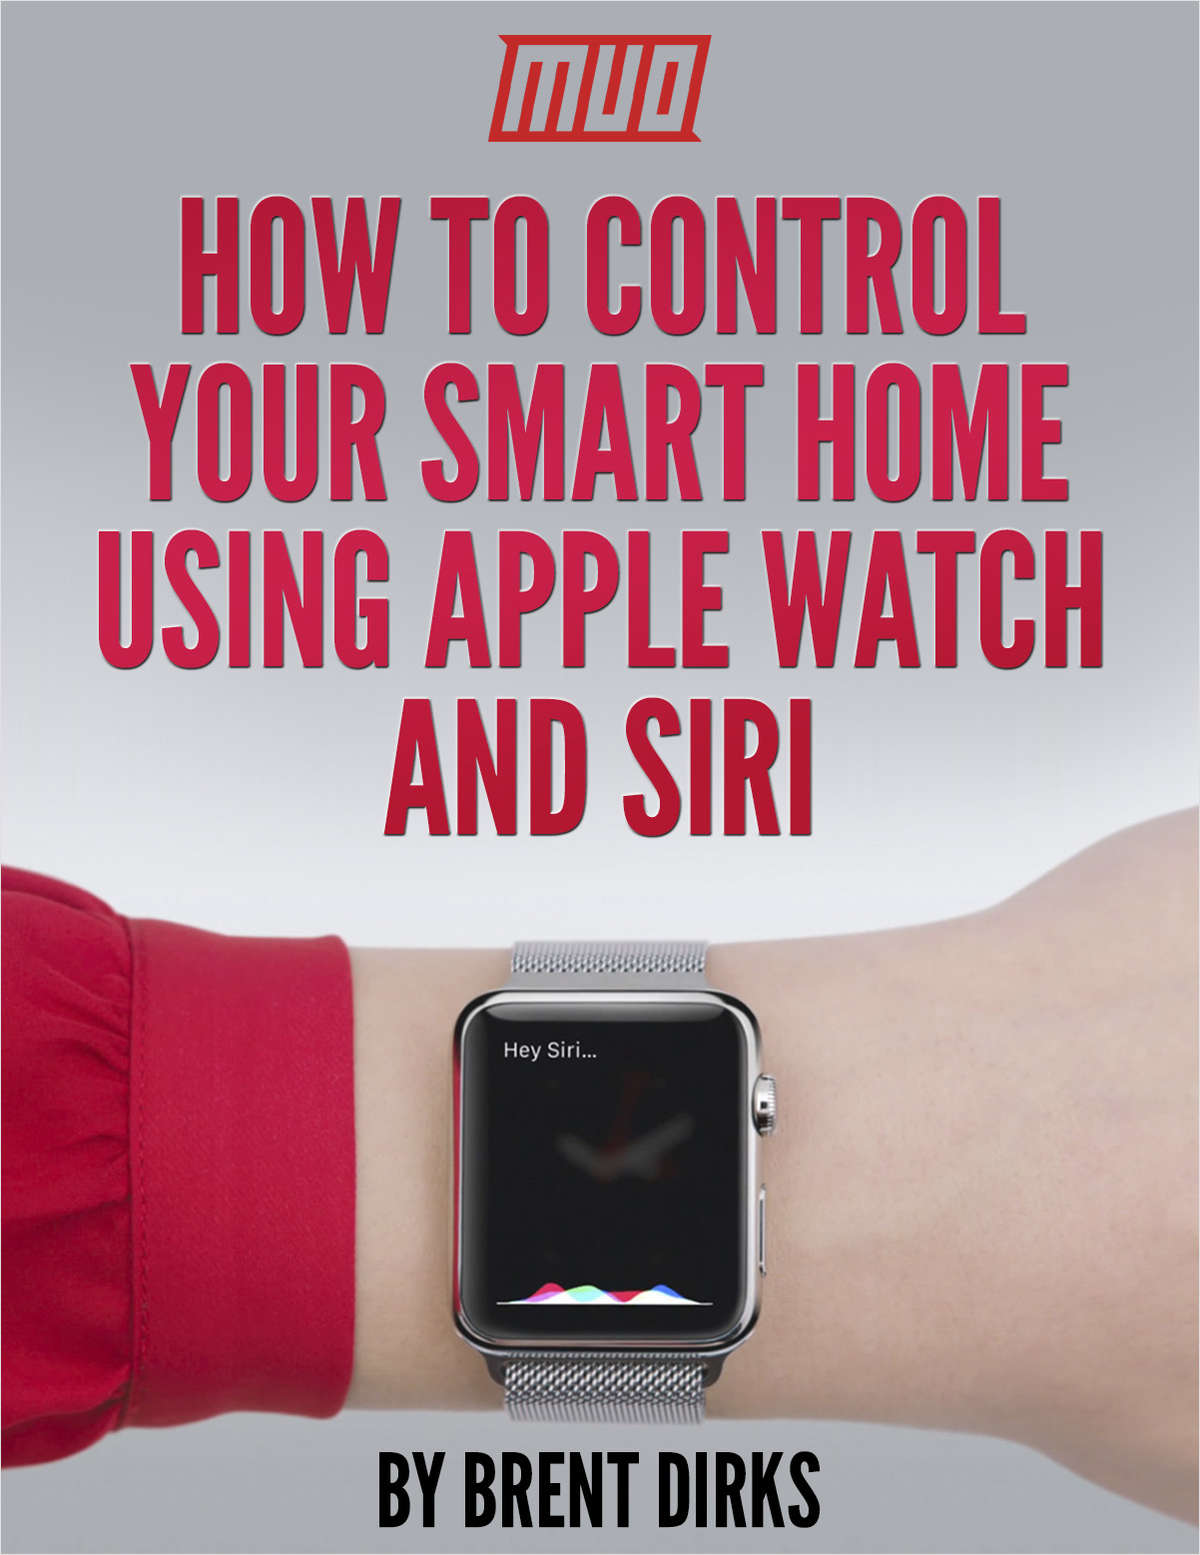 How to Control Your Smart Home Using Apple Watch and Siri